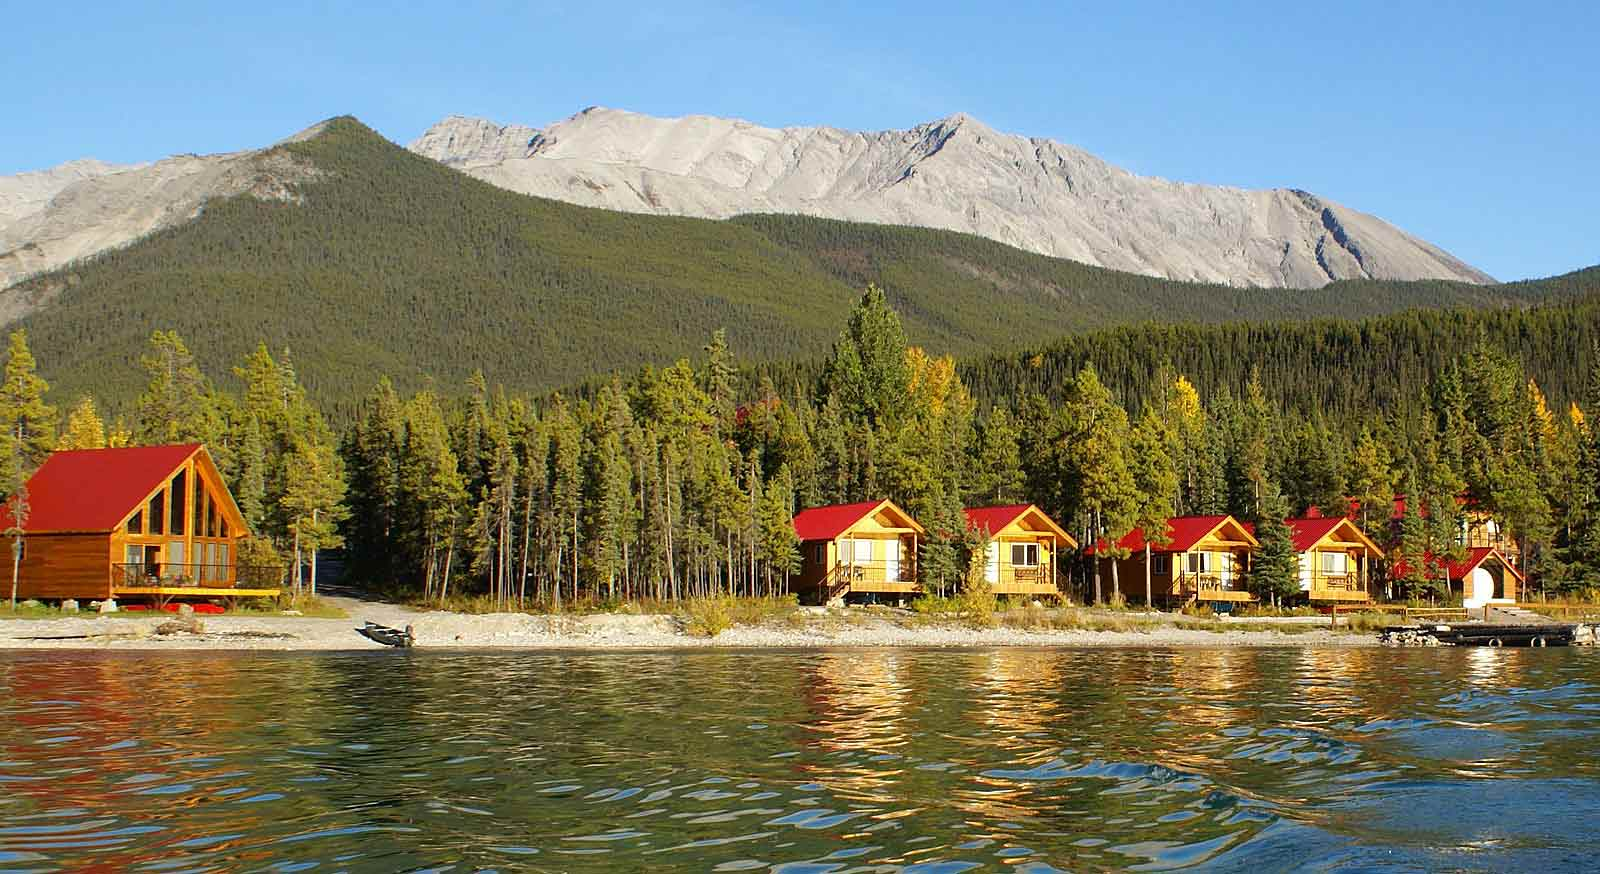 Stay in a lakeshore chalet directly on Muncho Lake